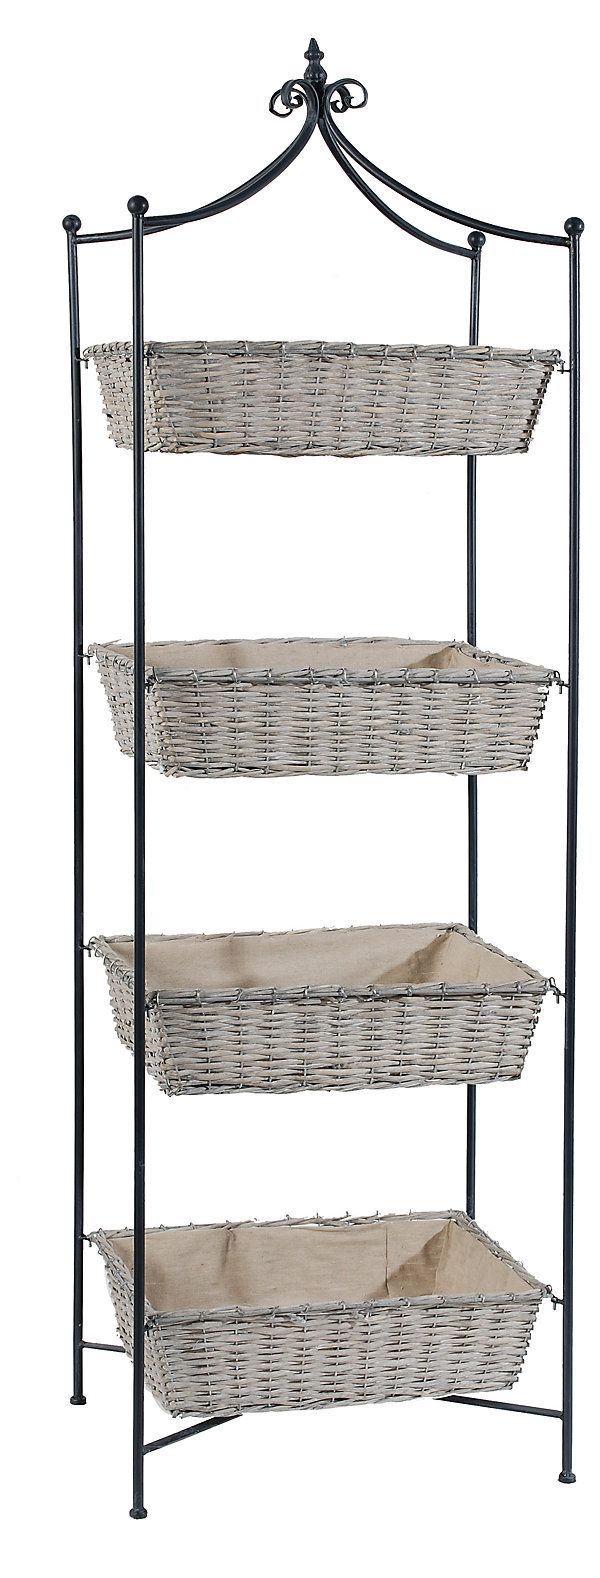 excellent light fabric lines each basket on this metal stand making it perfect for storing and. Black Bedroom Furniture Sets. Home Design Ideas